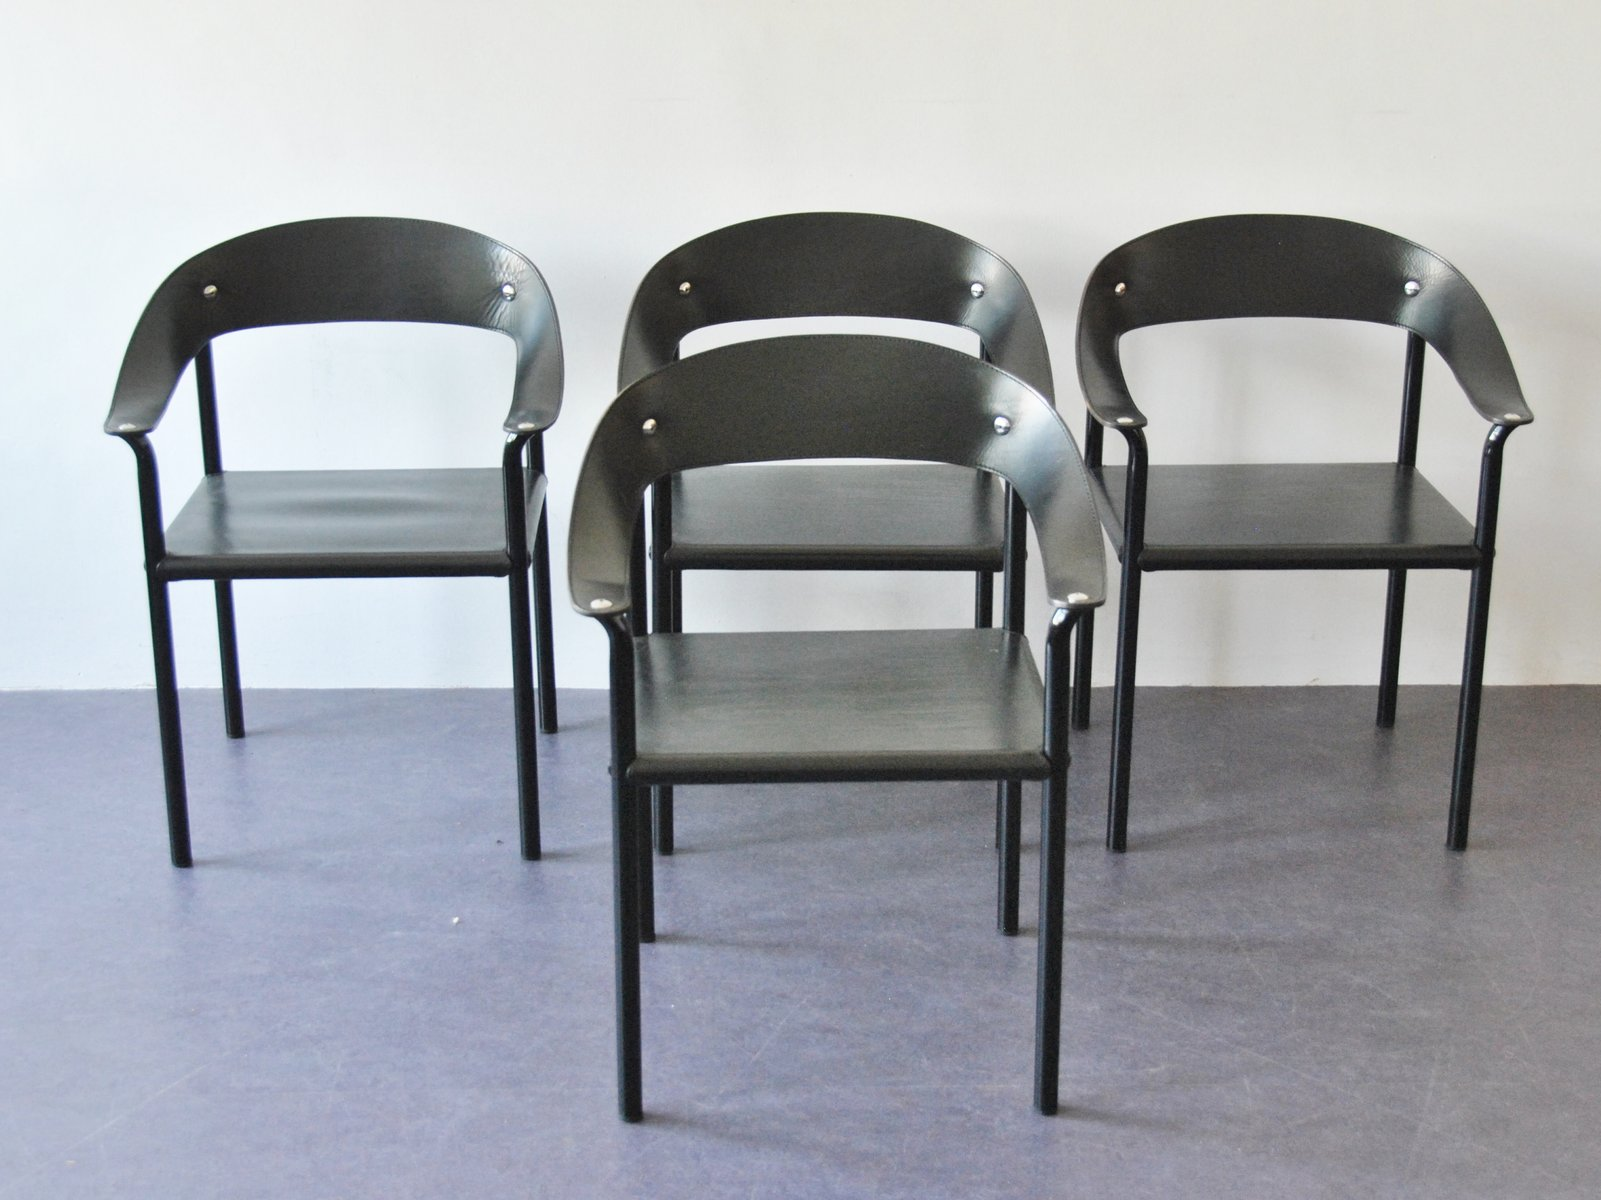 Vintage Black Leather Lacquered Metal Dining Chairs Set Of 4